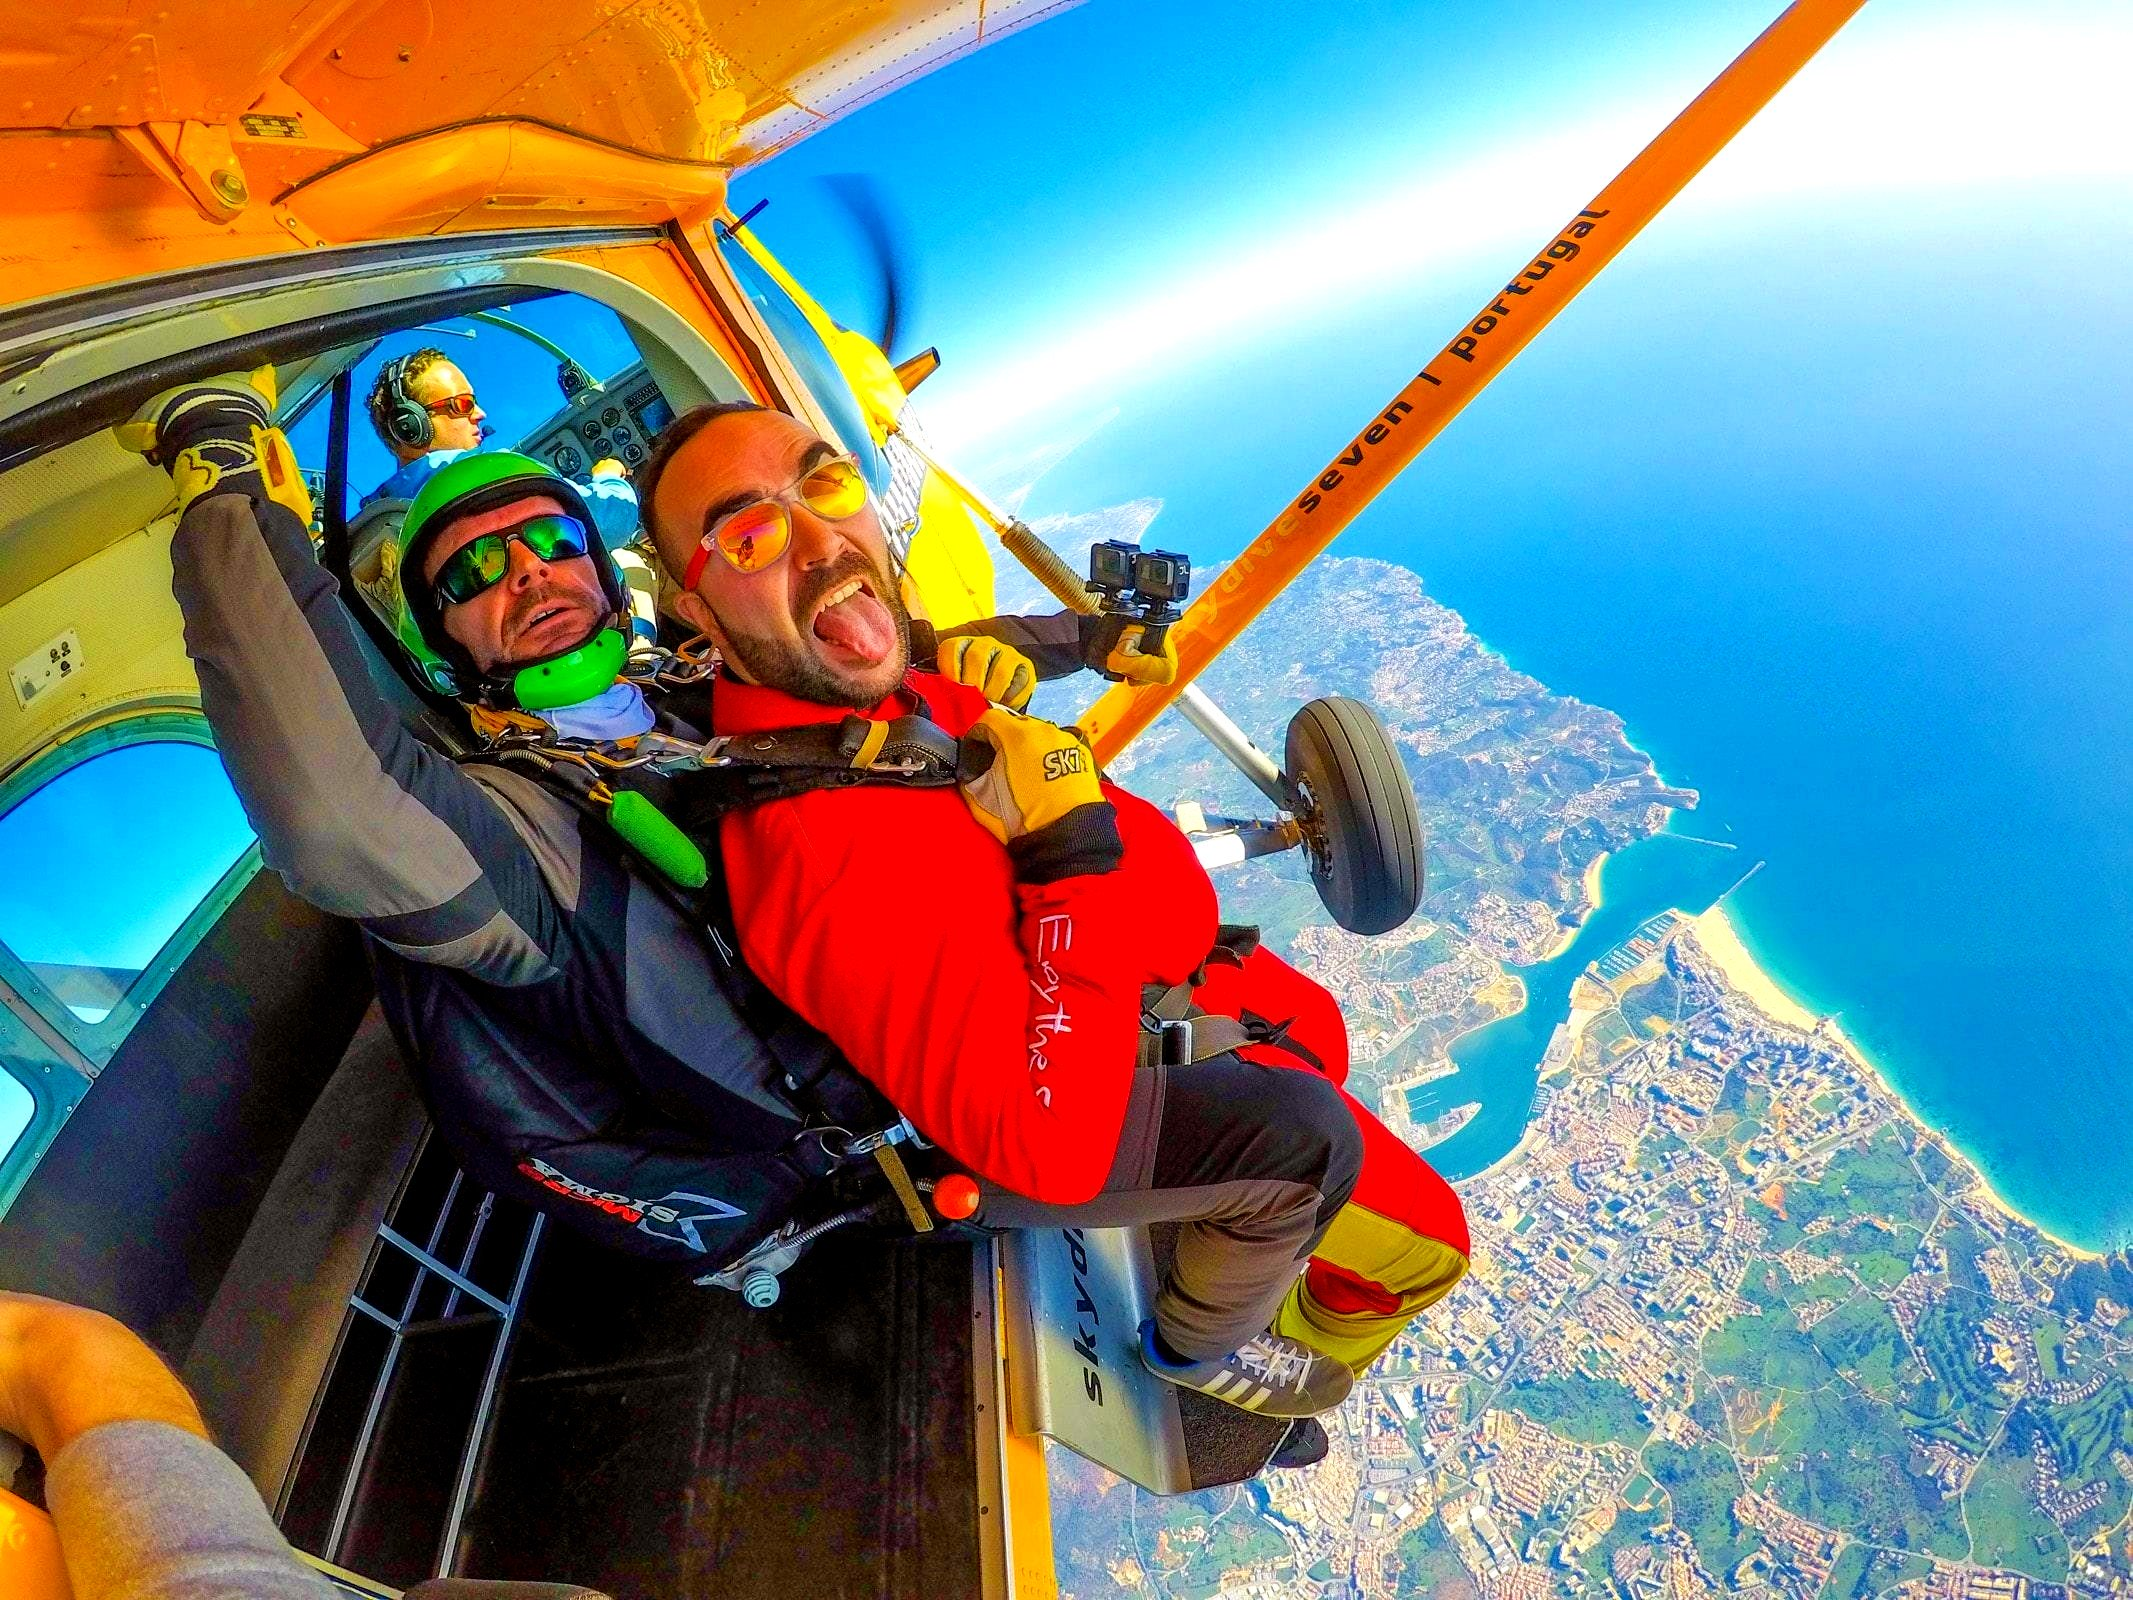 The plane has the door open, the participant and his instructor are ready to skydive in the Algarve.